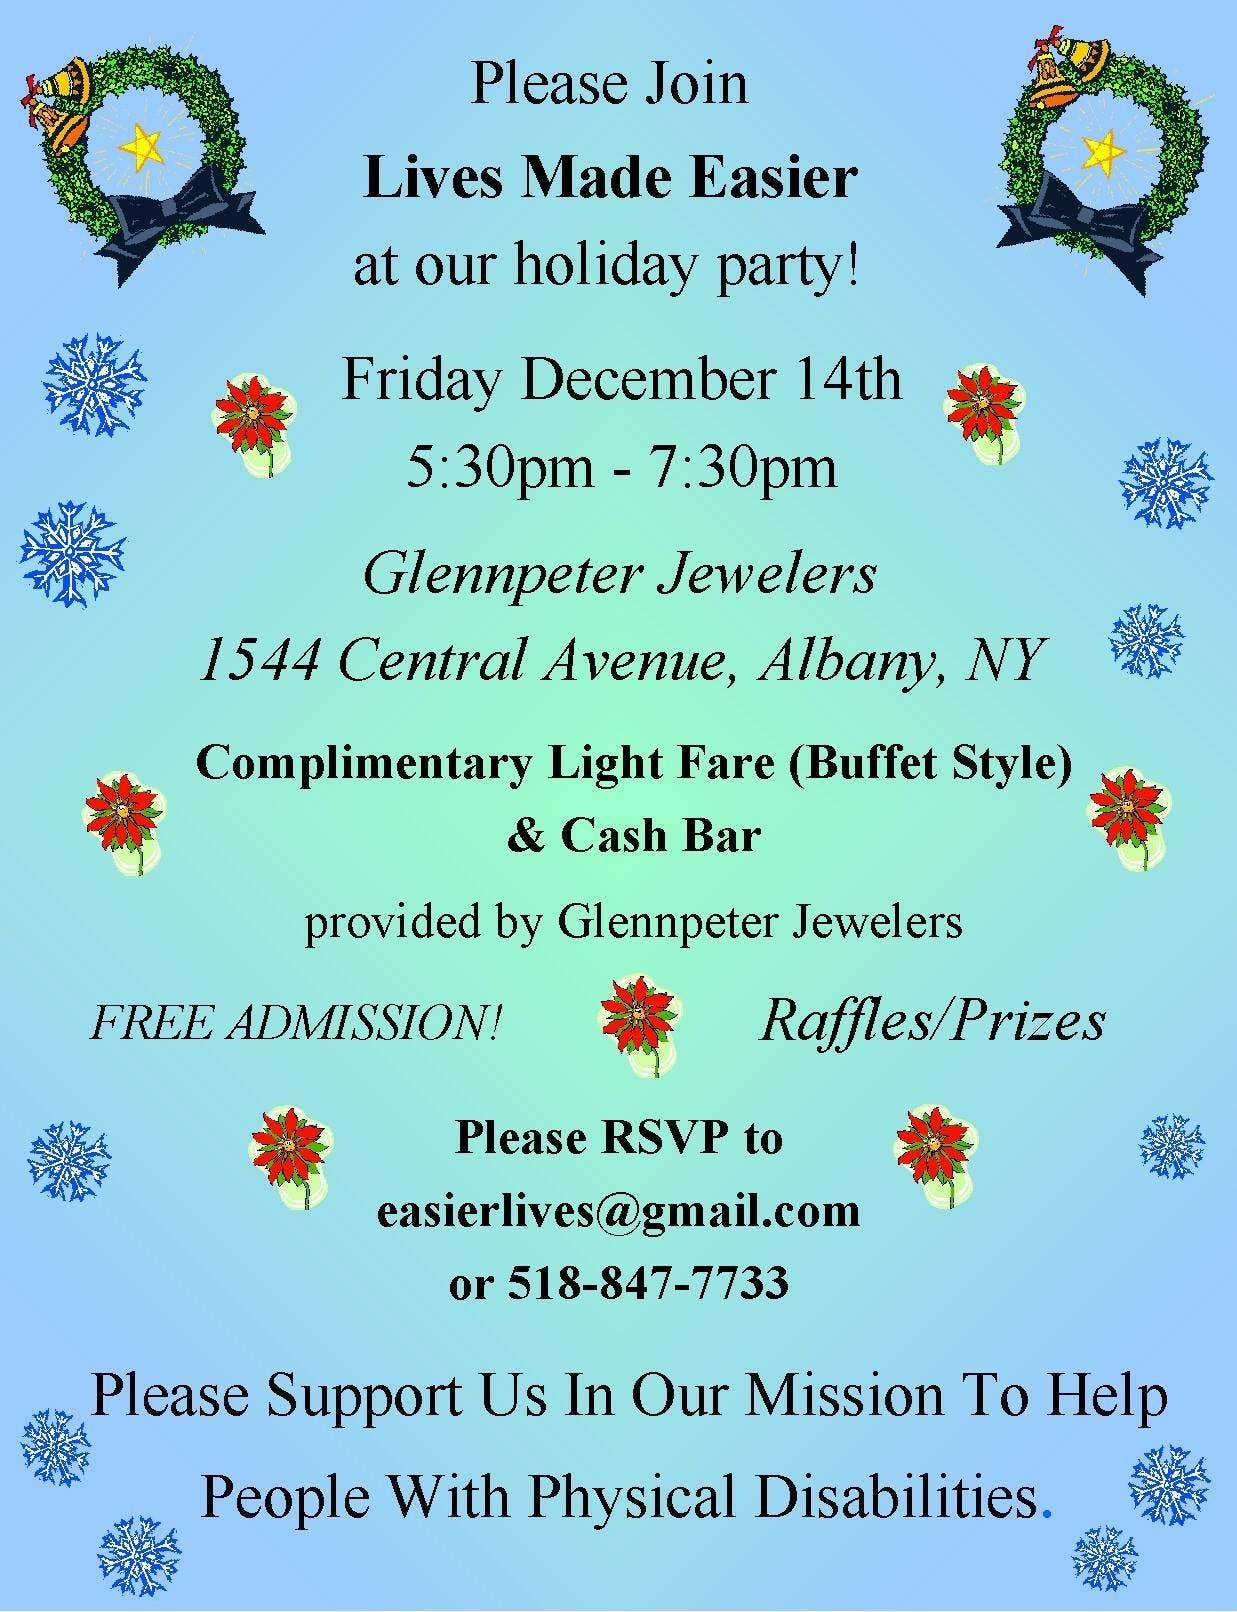 Lives Made Easier Holiday Party